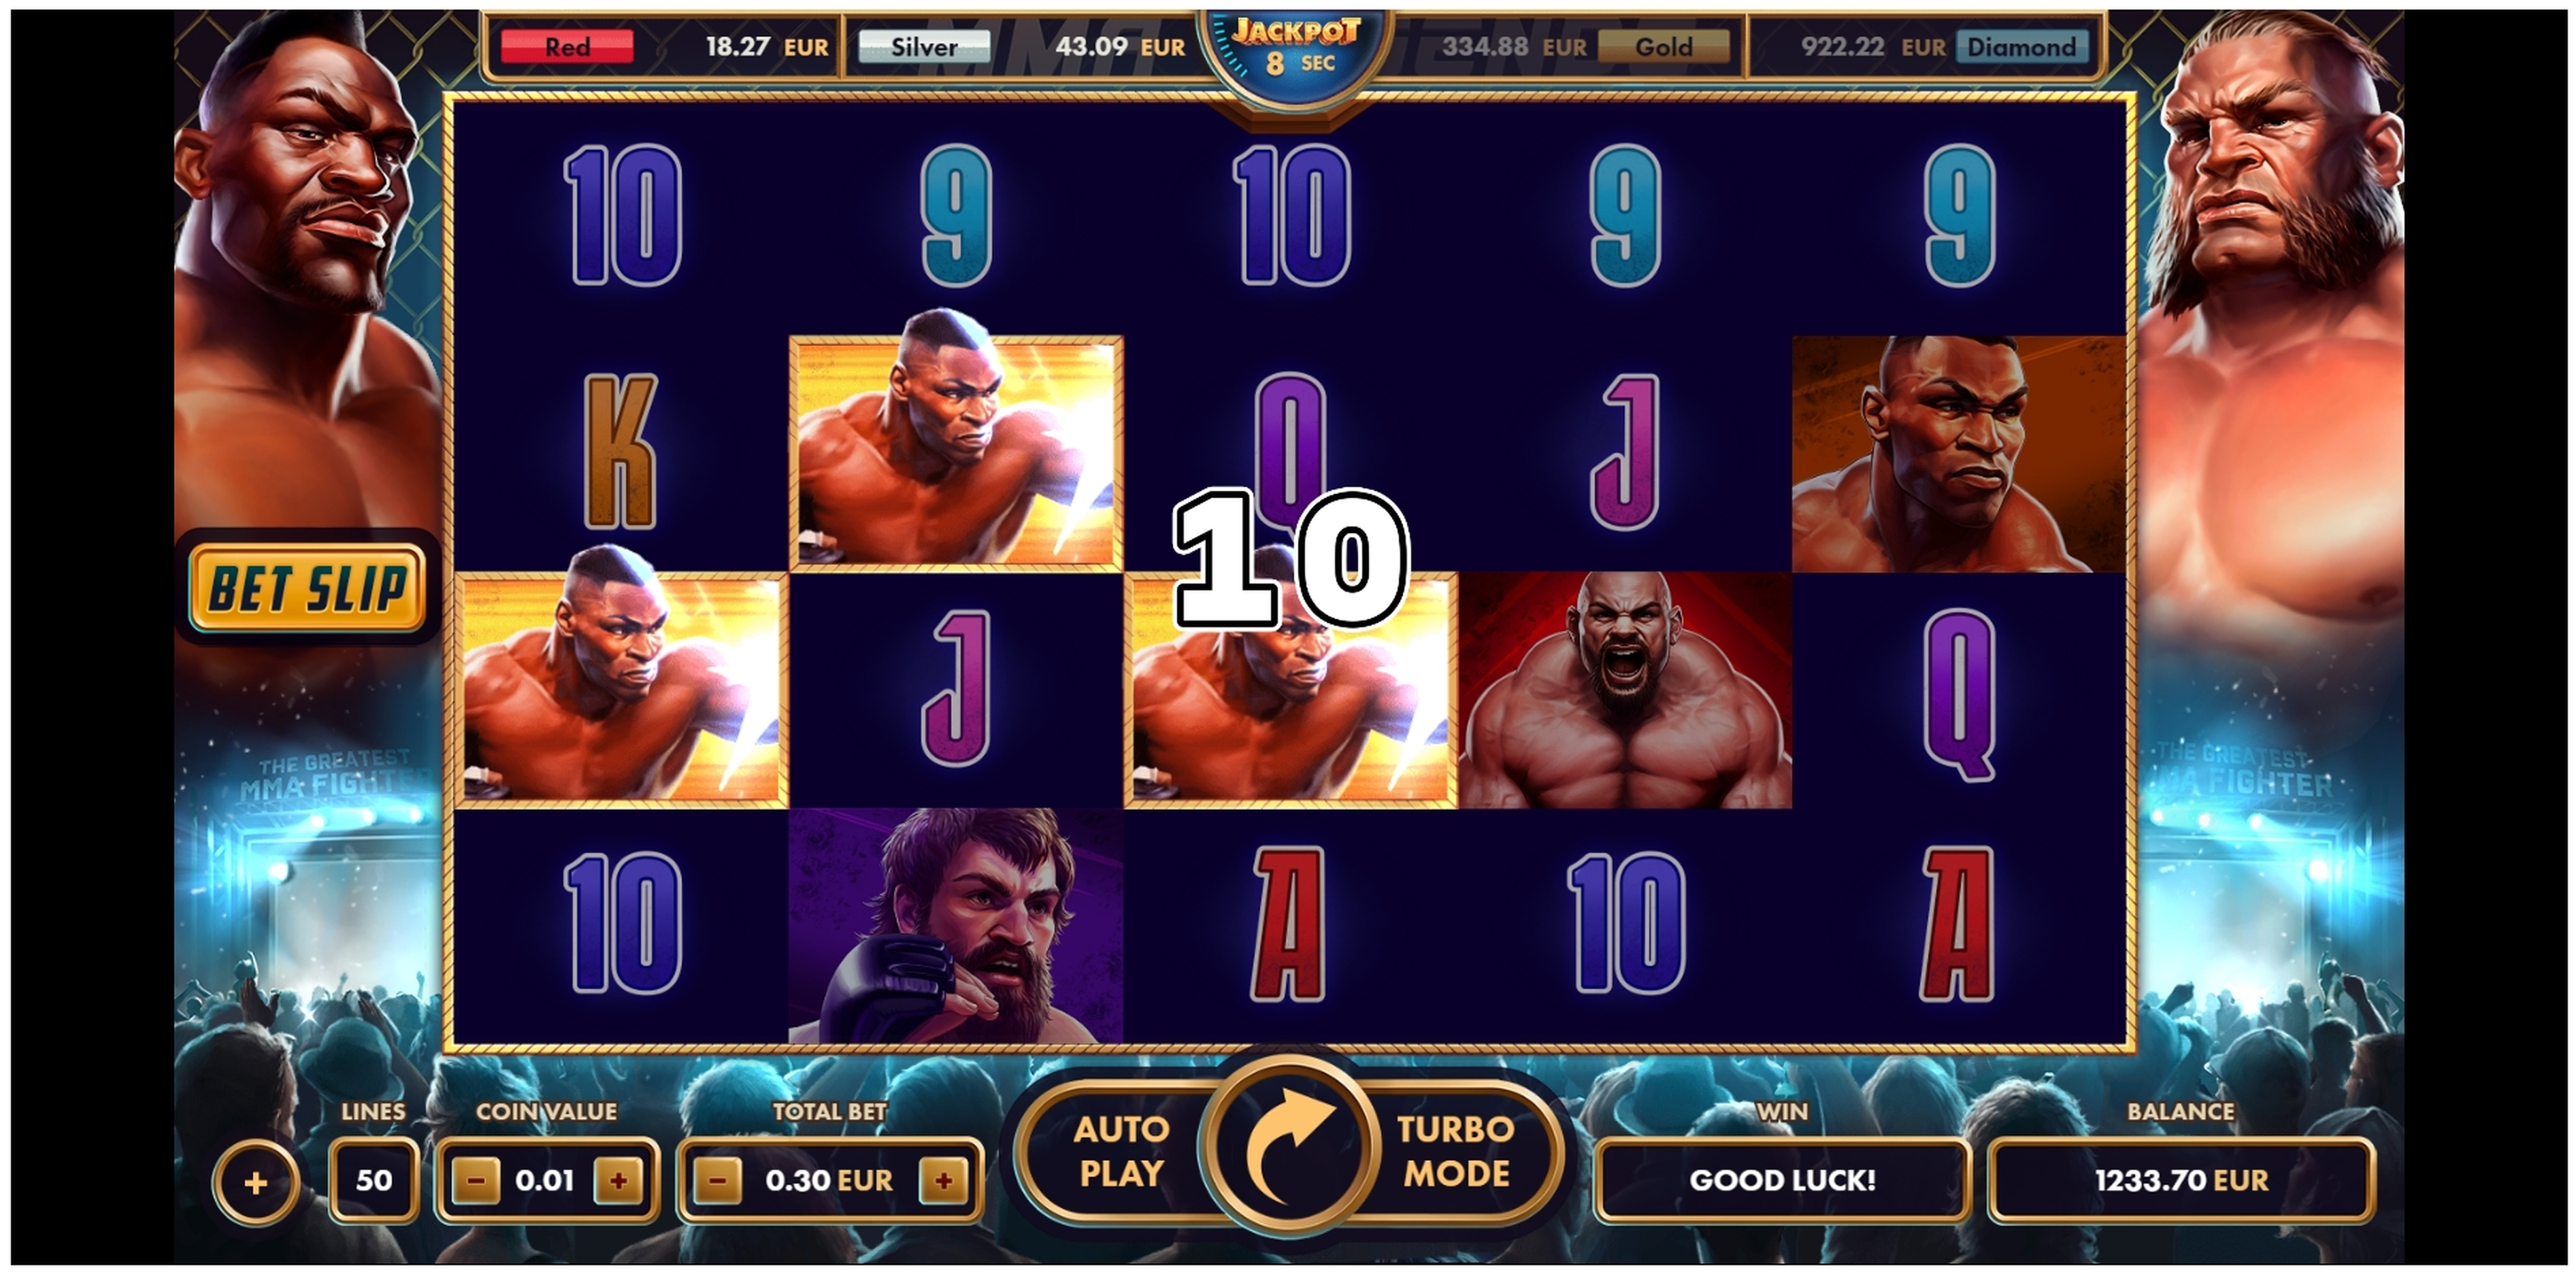 Win Money in MMA Legends Free Slot Game by NetGame